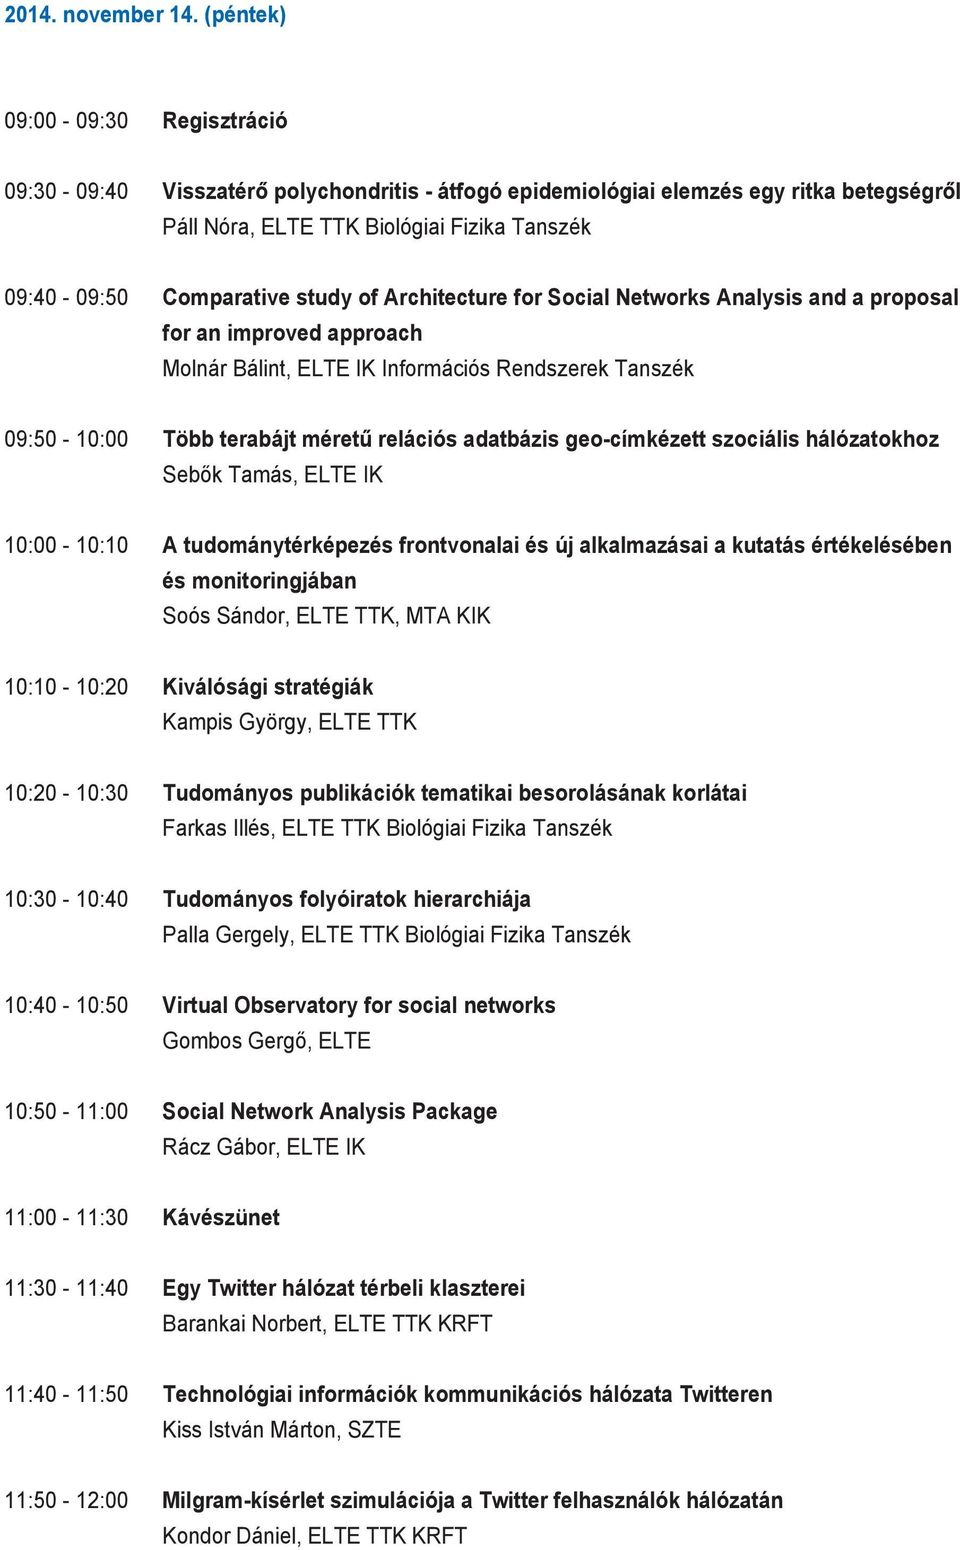 study of Architecture for Social Networks Analysis and a proposal for an improved approach Molnár Bálint, ELTE IK Információs Rendszerek Tanszék 09:50-10:00 Több terabájt méretű relációs adatbázis